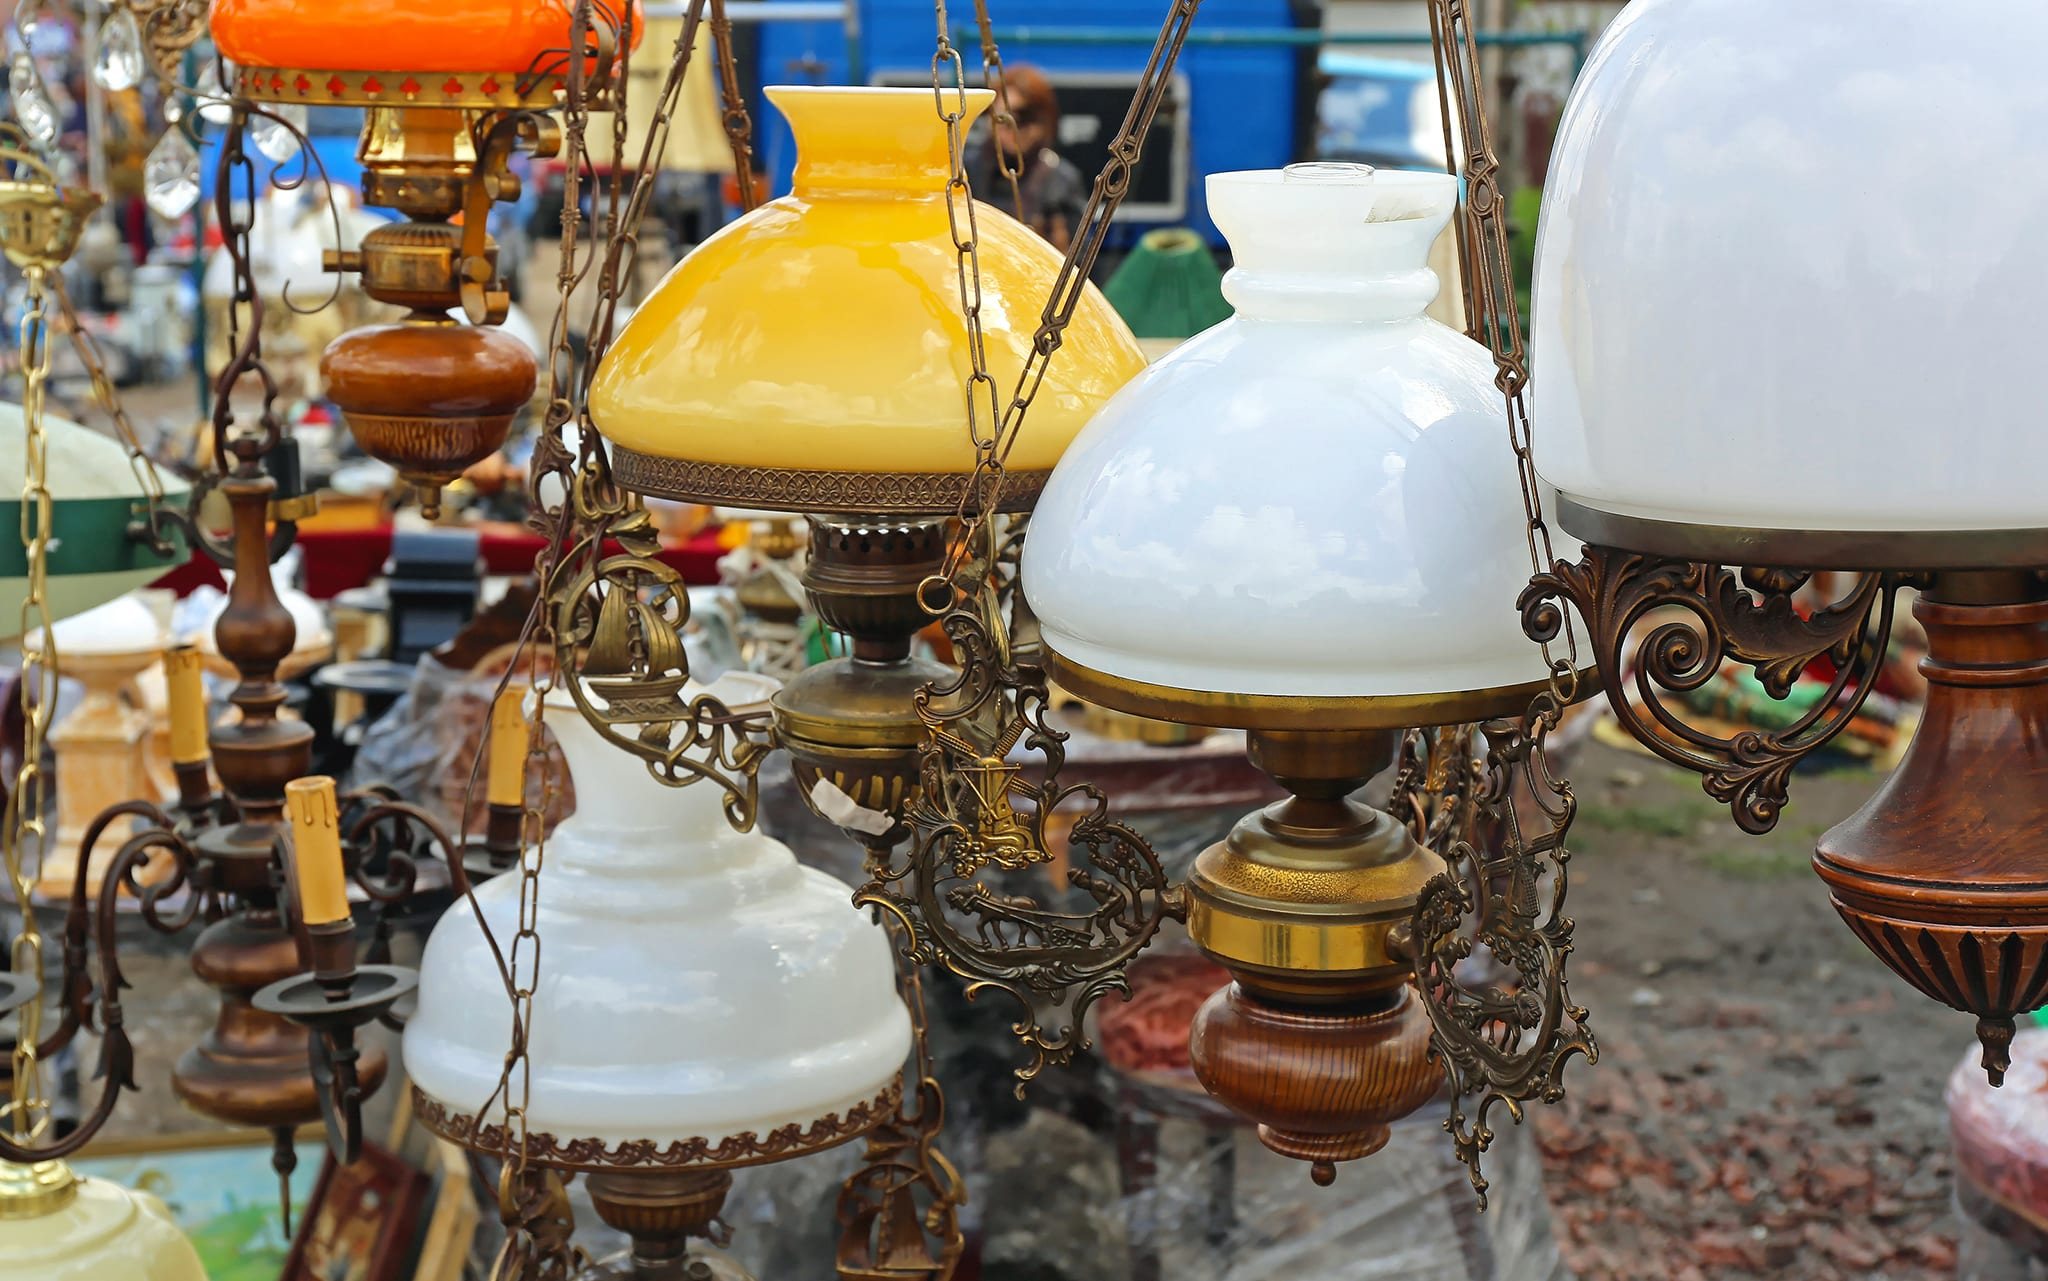 bring ambience to your home with a vintage lamp from ramzs emprium lafayette indiana